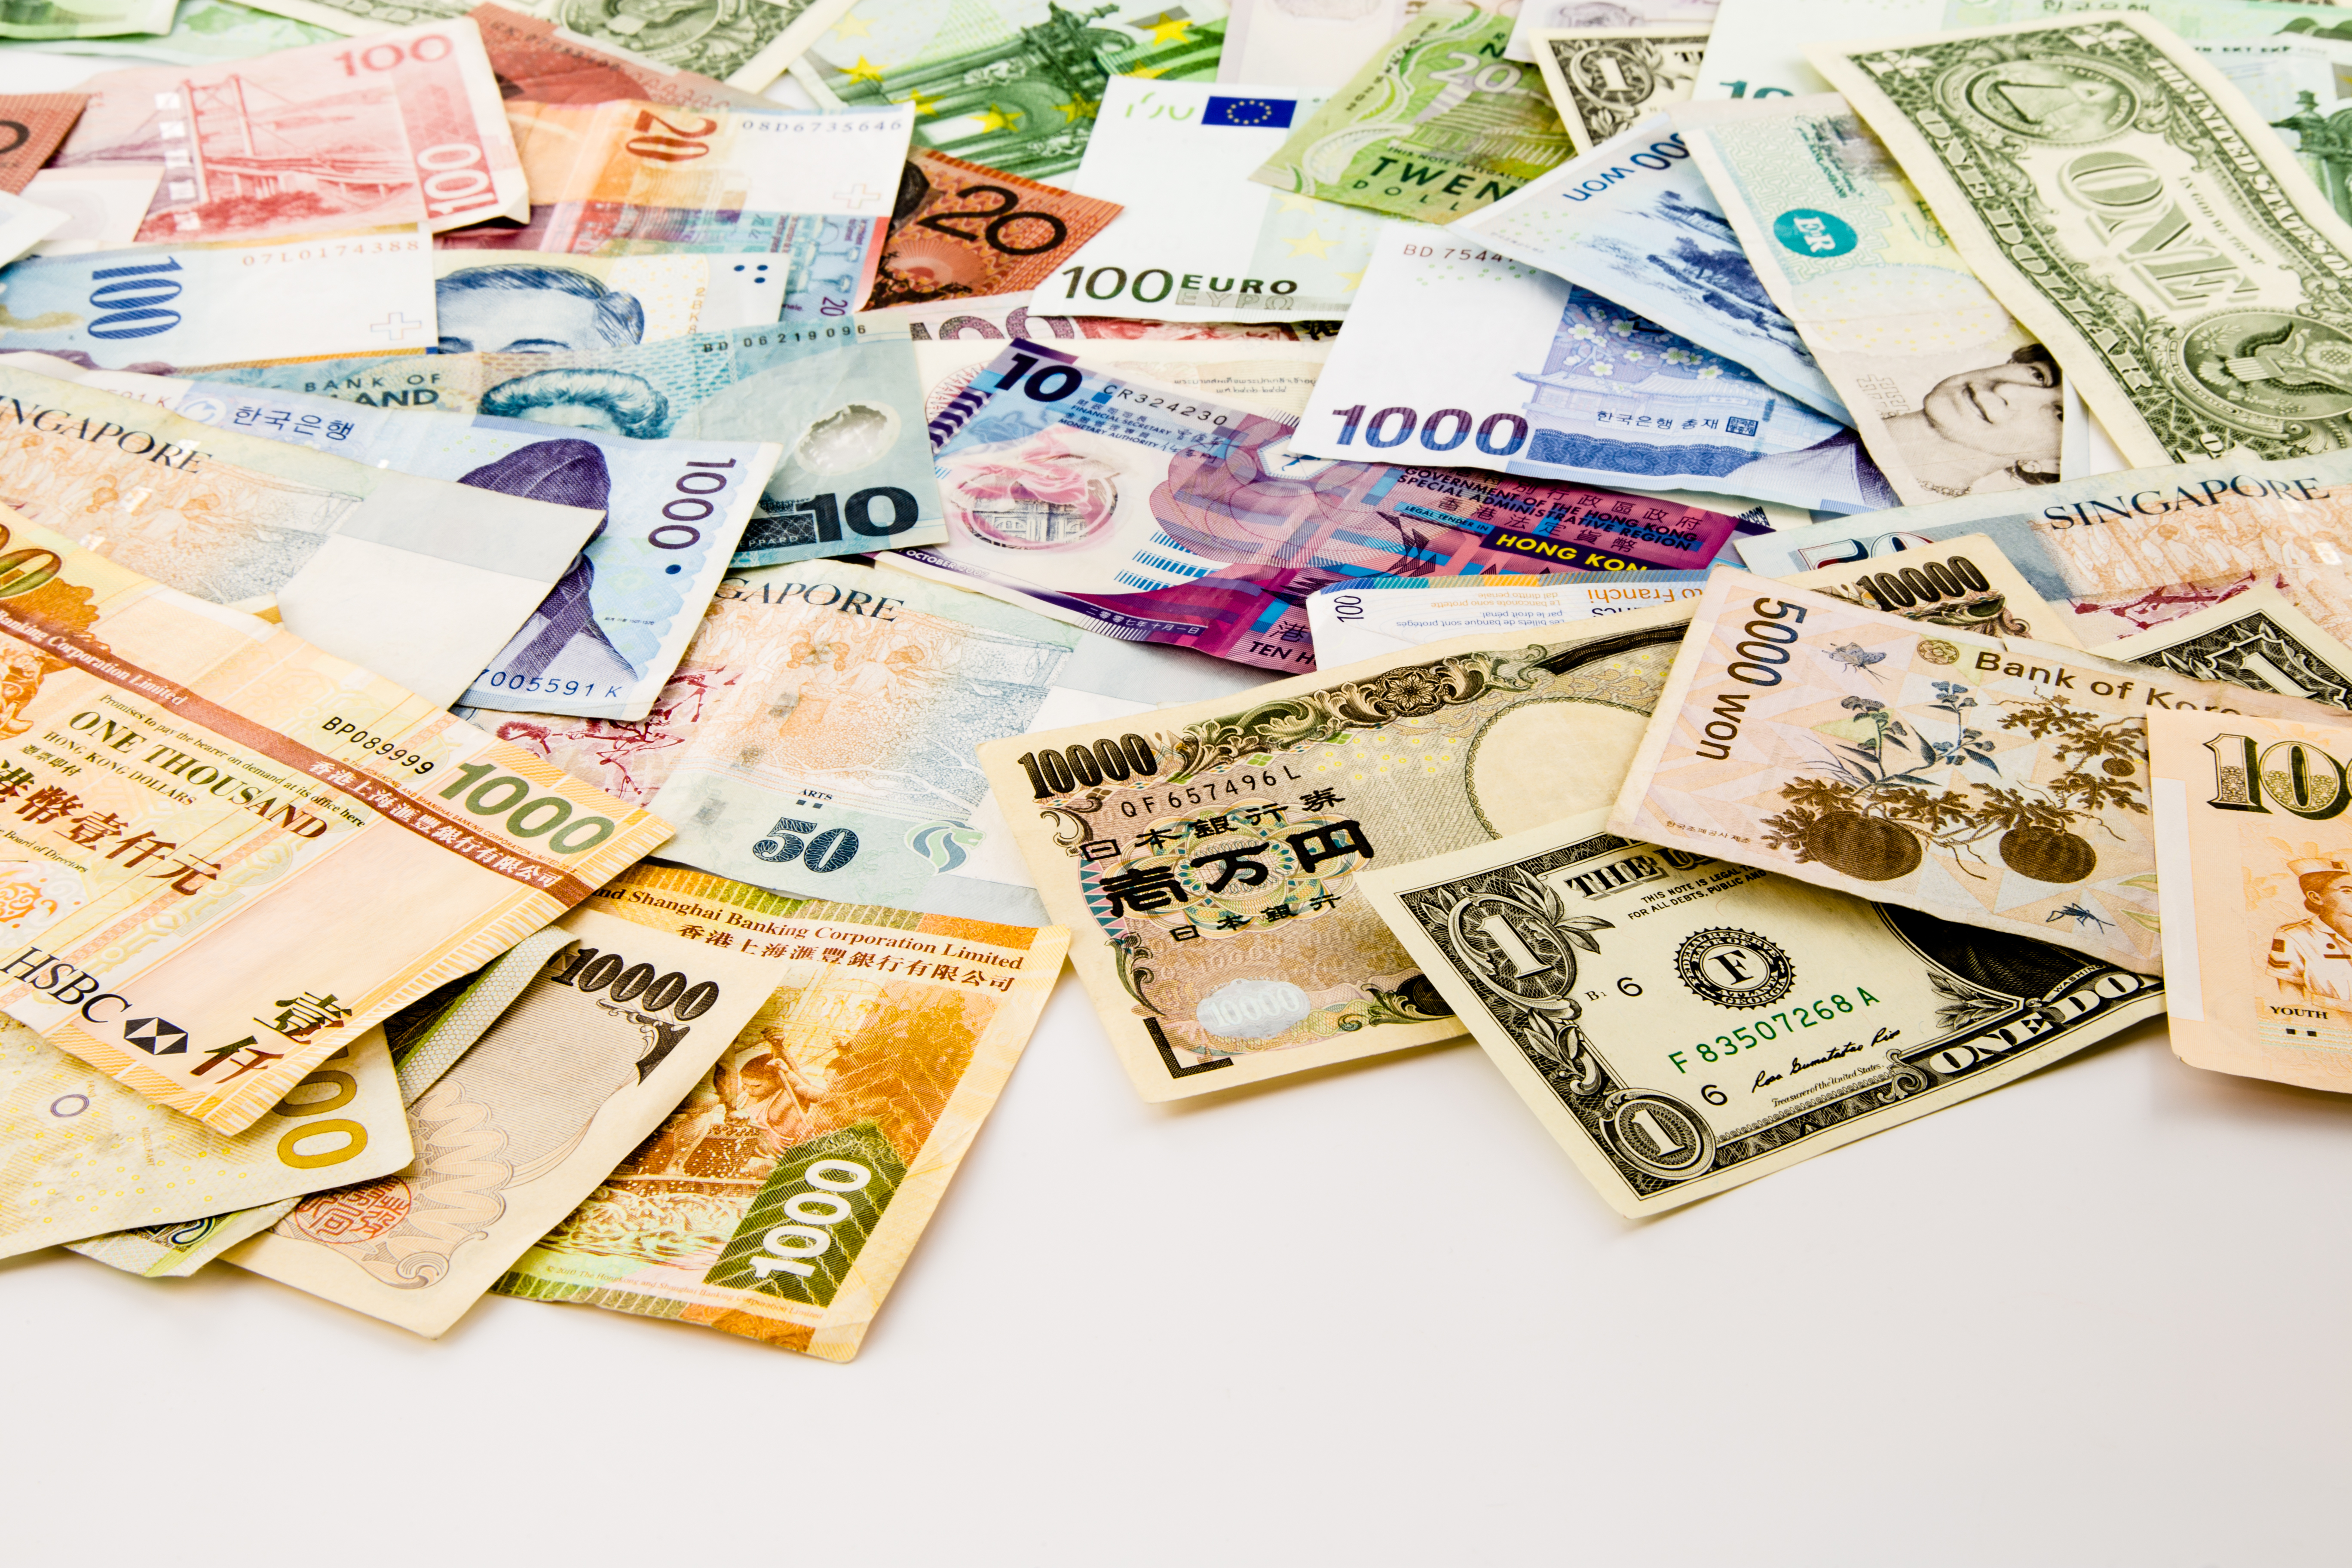 Mehrling in Bloomberg on Rethinking Currency | The Frederick